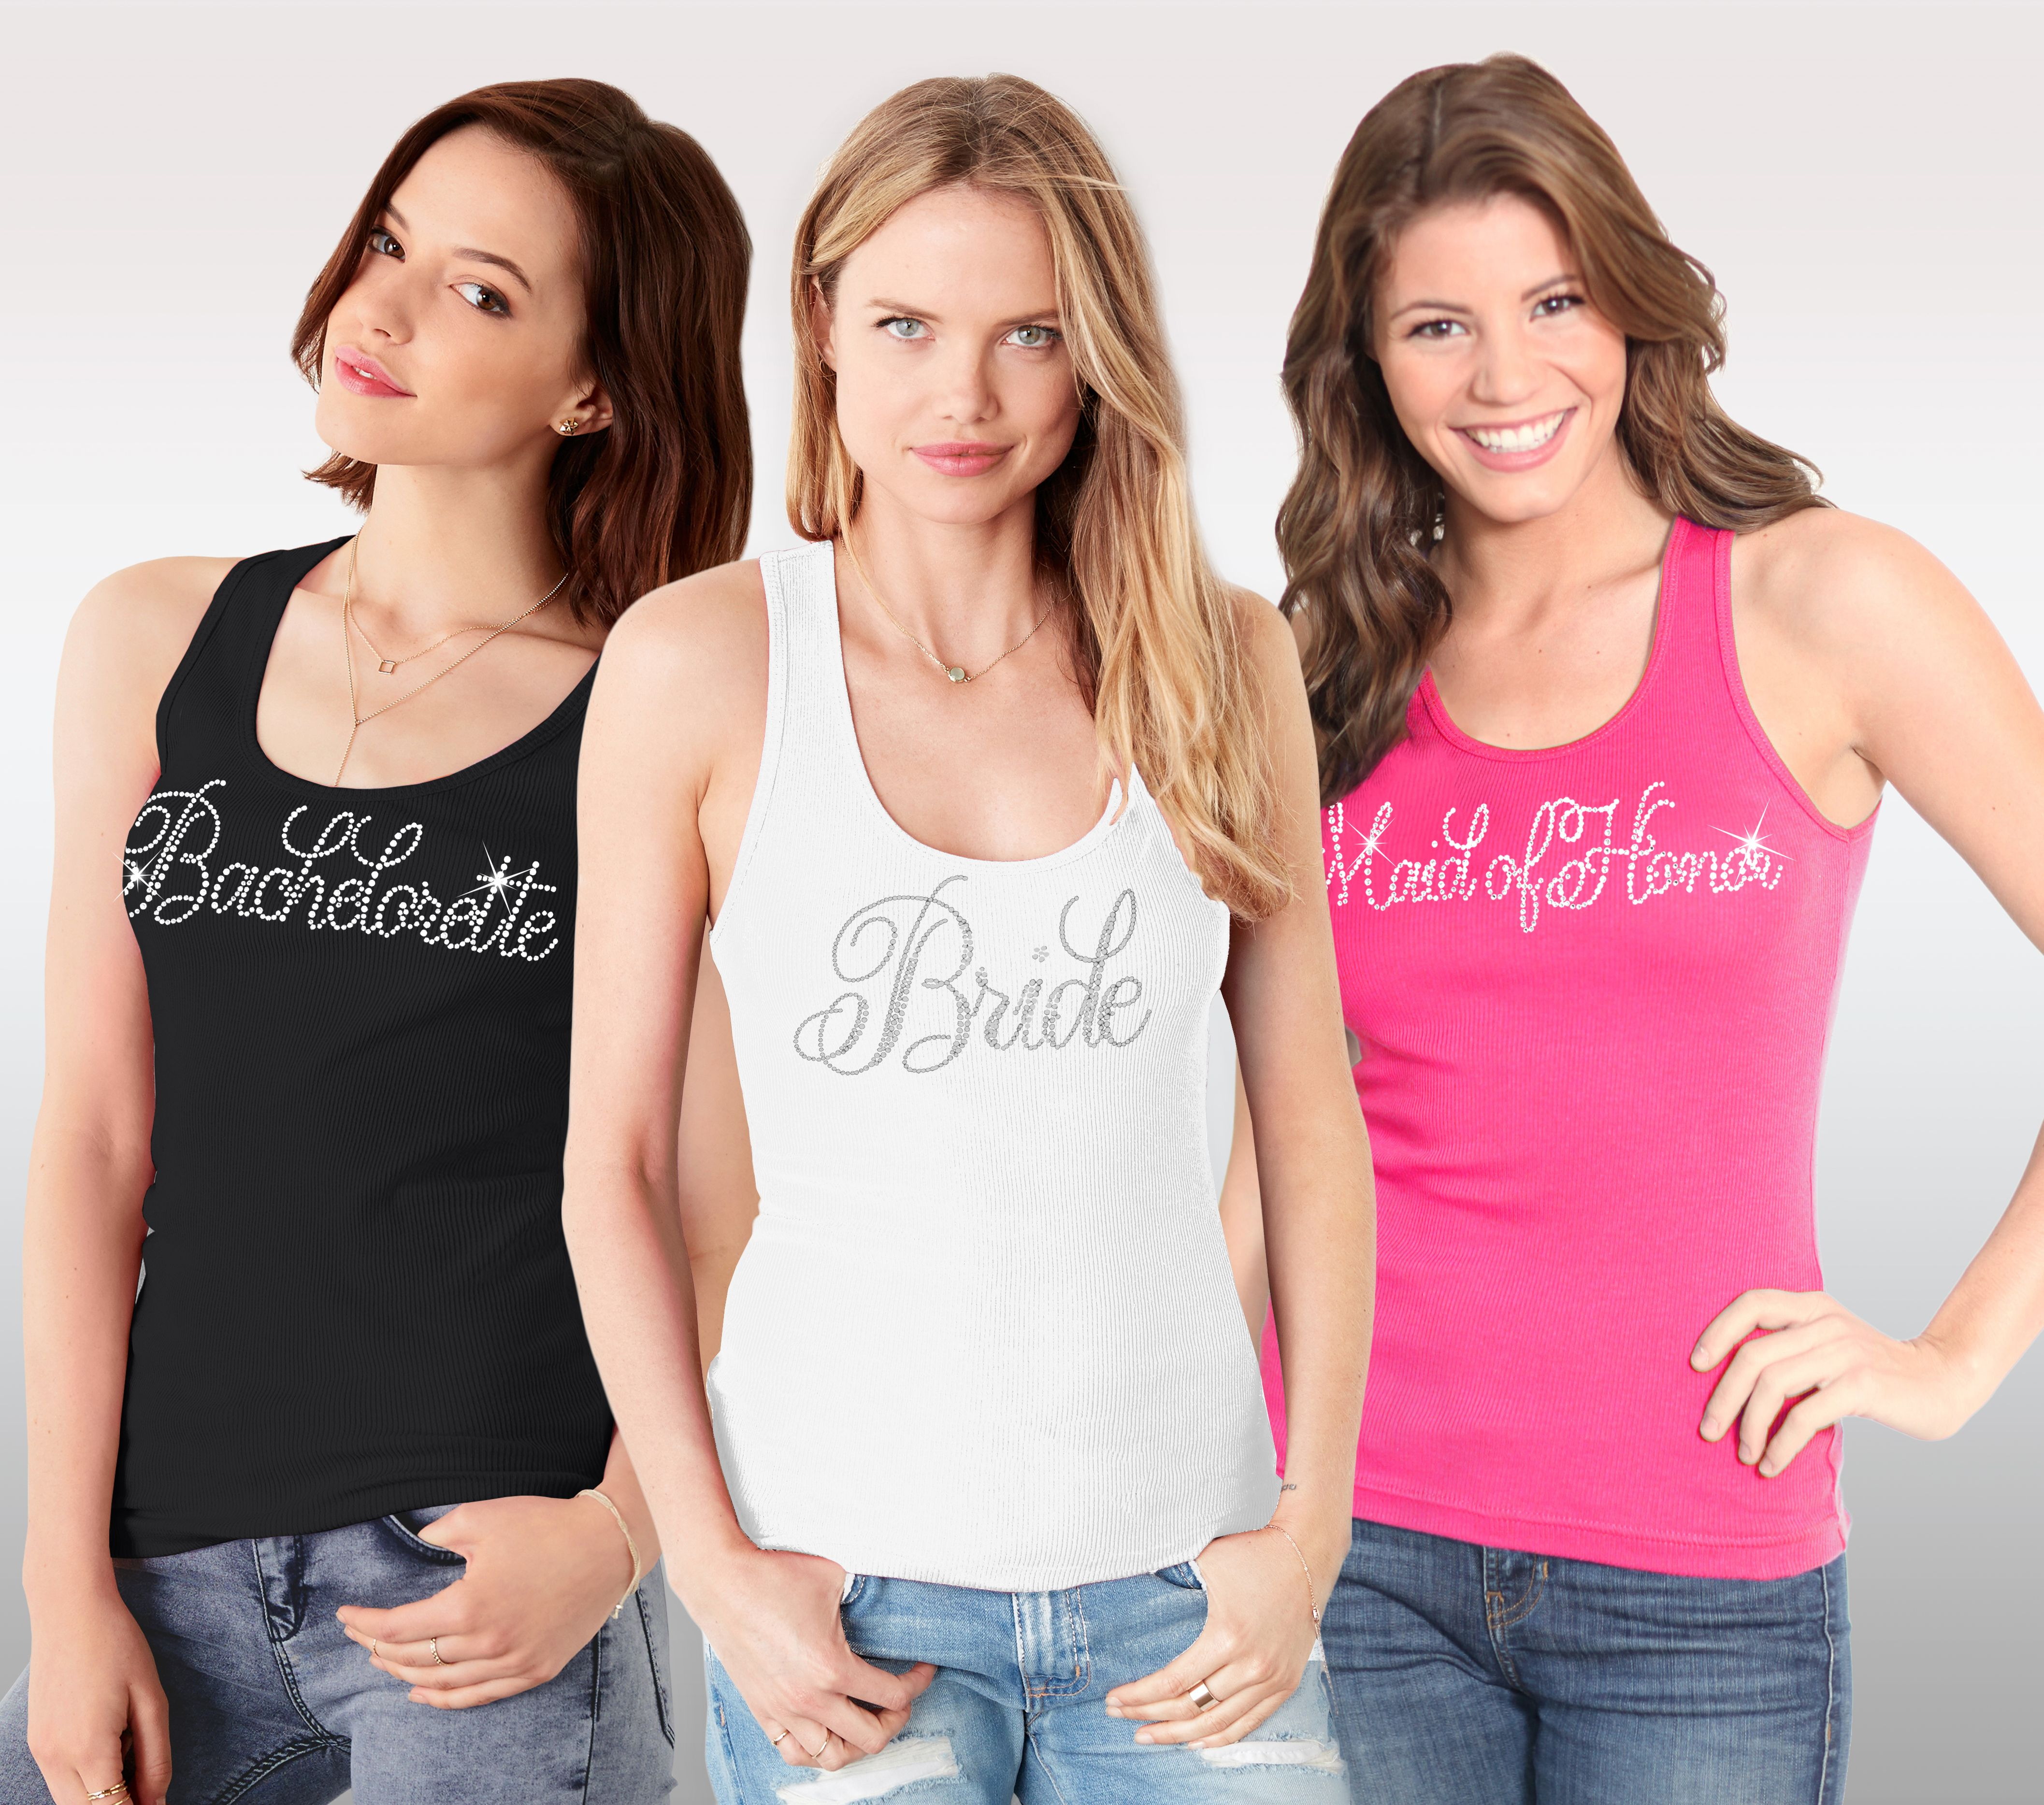 6130da5f2d66a Gorgeous Rhinestone Tank Tops for the entire Bridal Party! Available in  Black